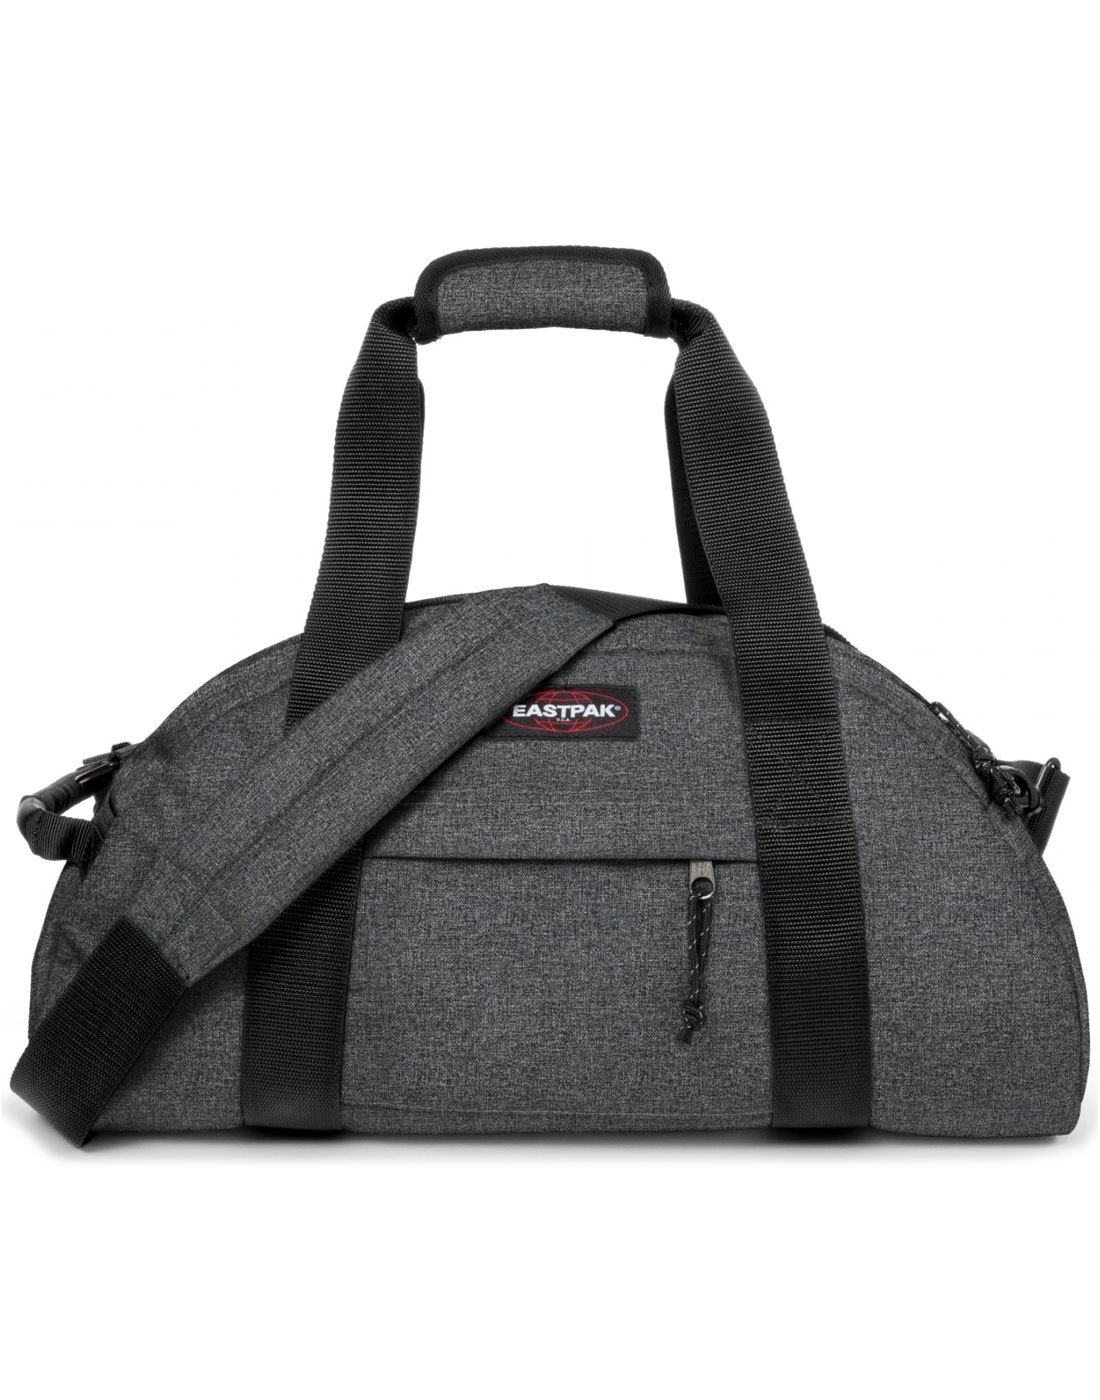 Stand EASTPAK Retro Mod Bowling Bag Holdall (BD)